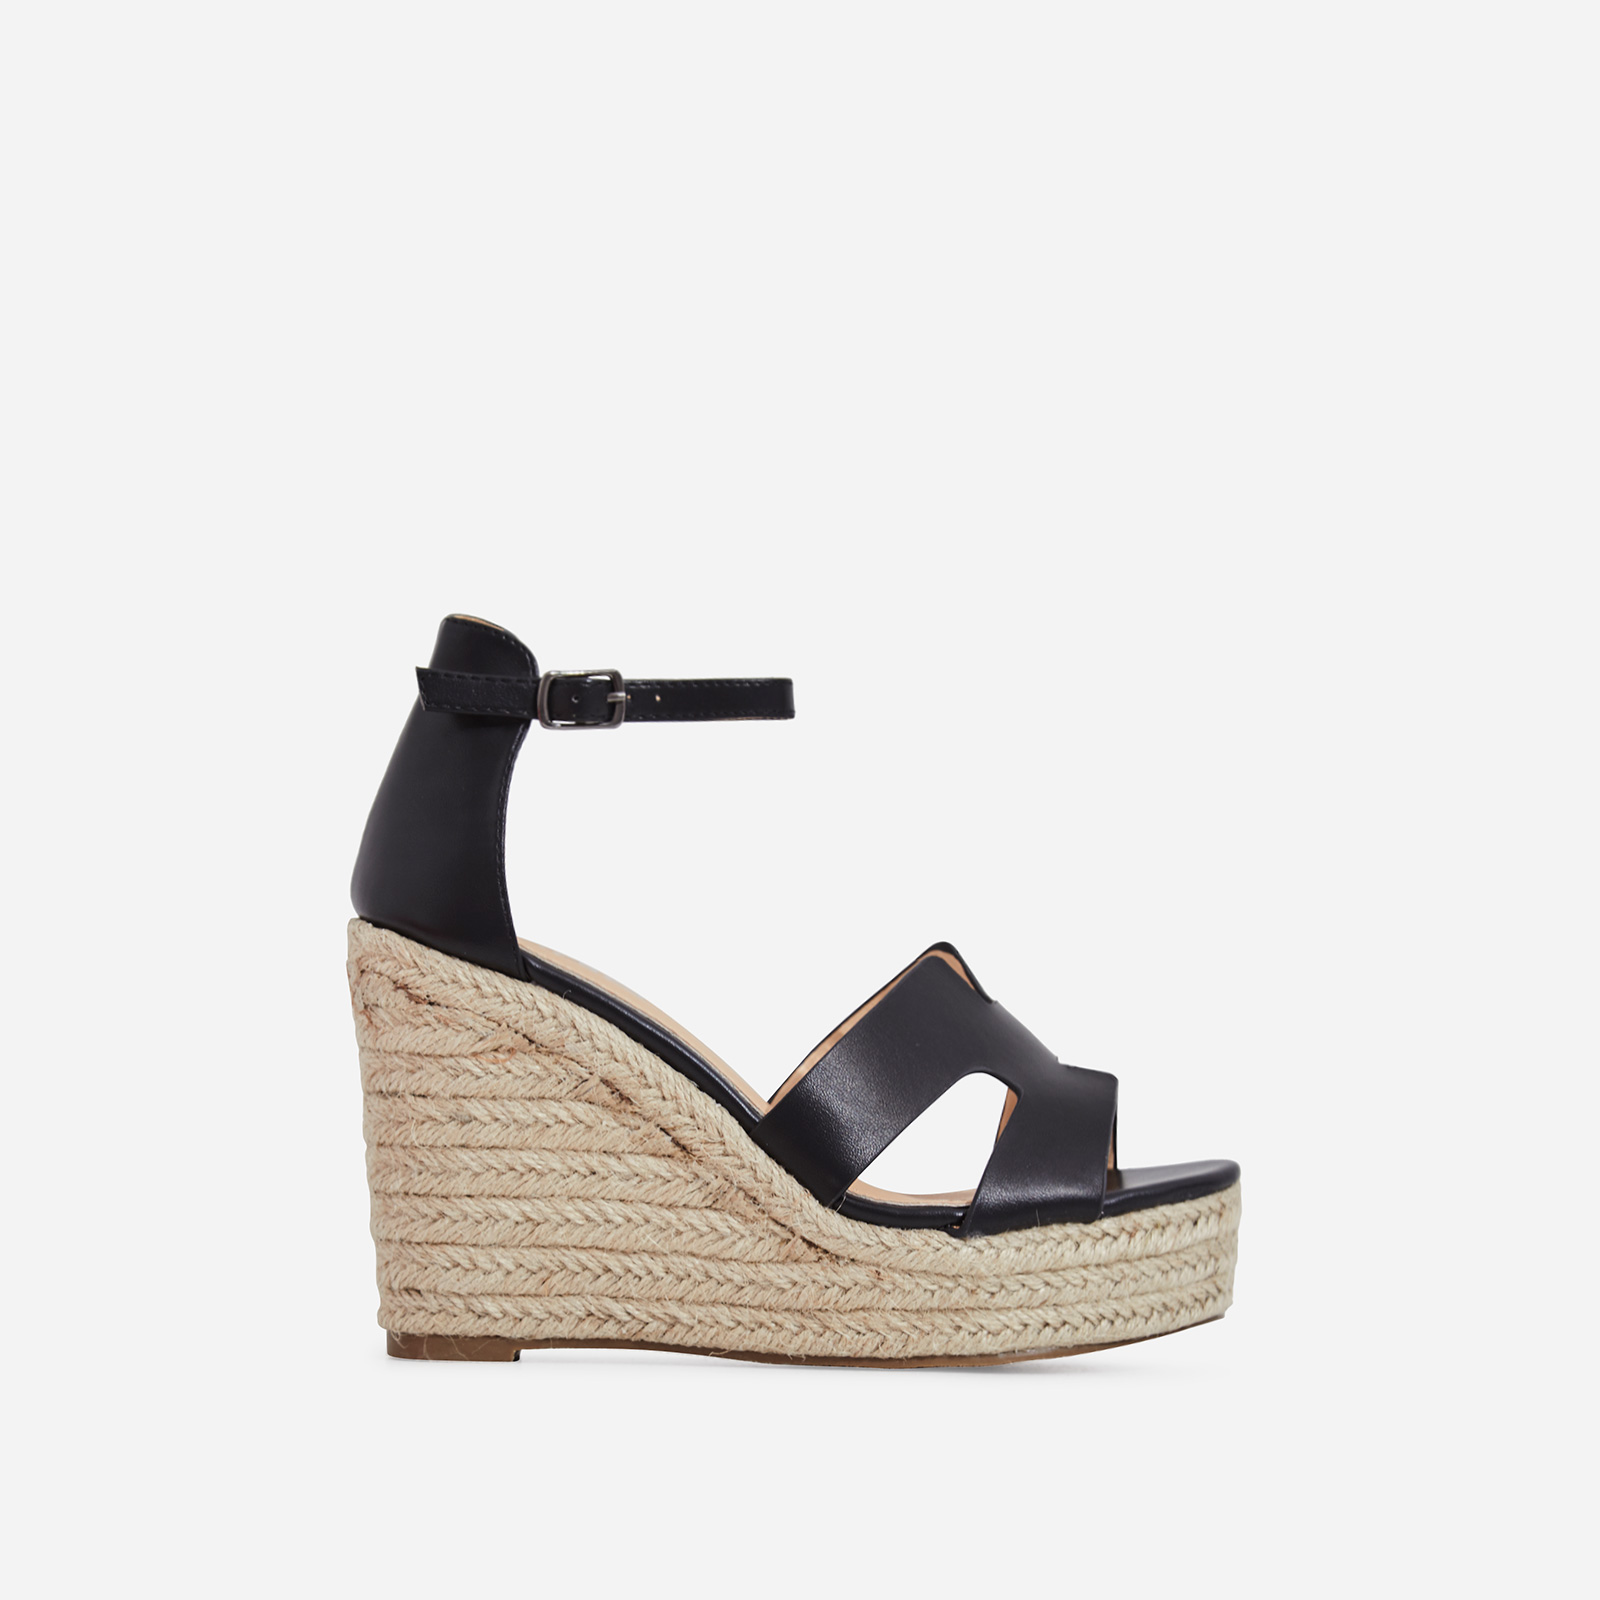 Kayson Platform Espadrille Wedge Block Heel In Black Faux Leather